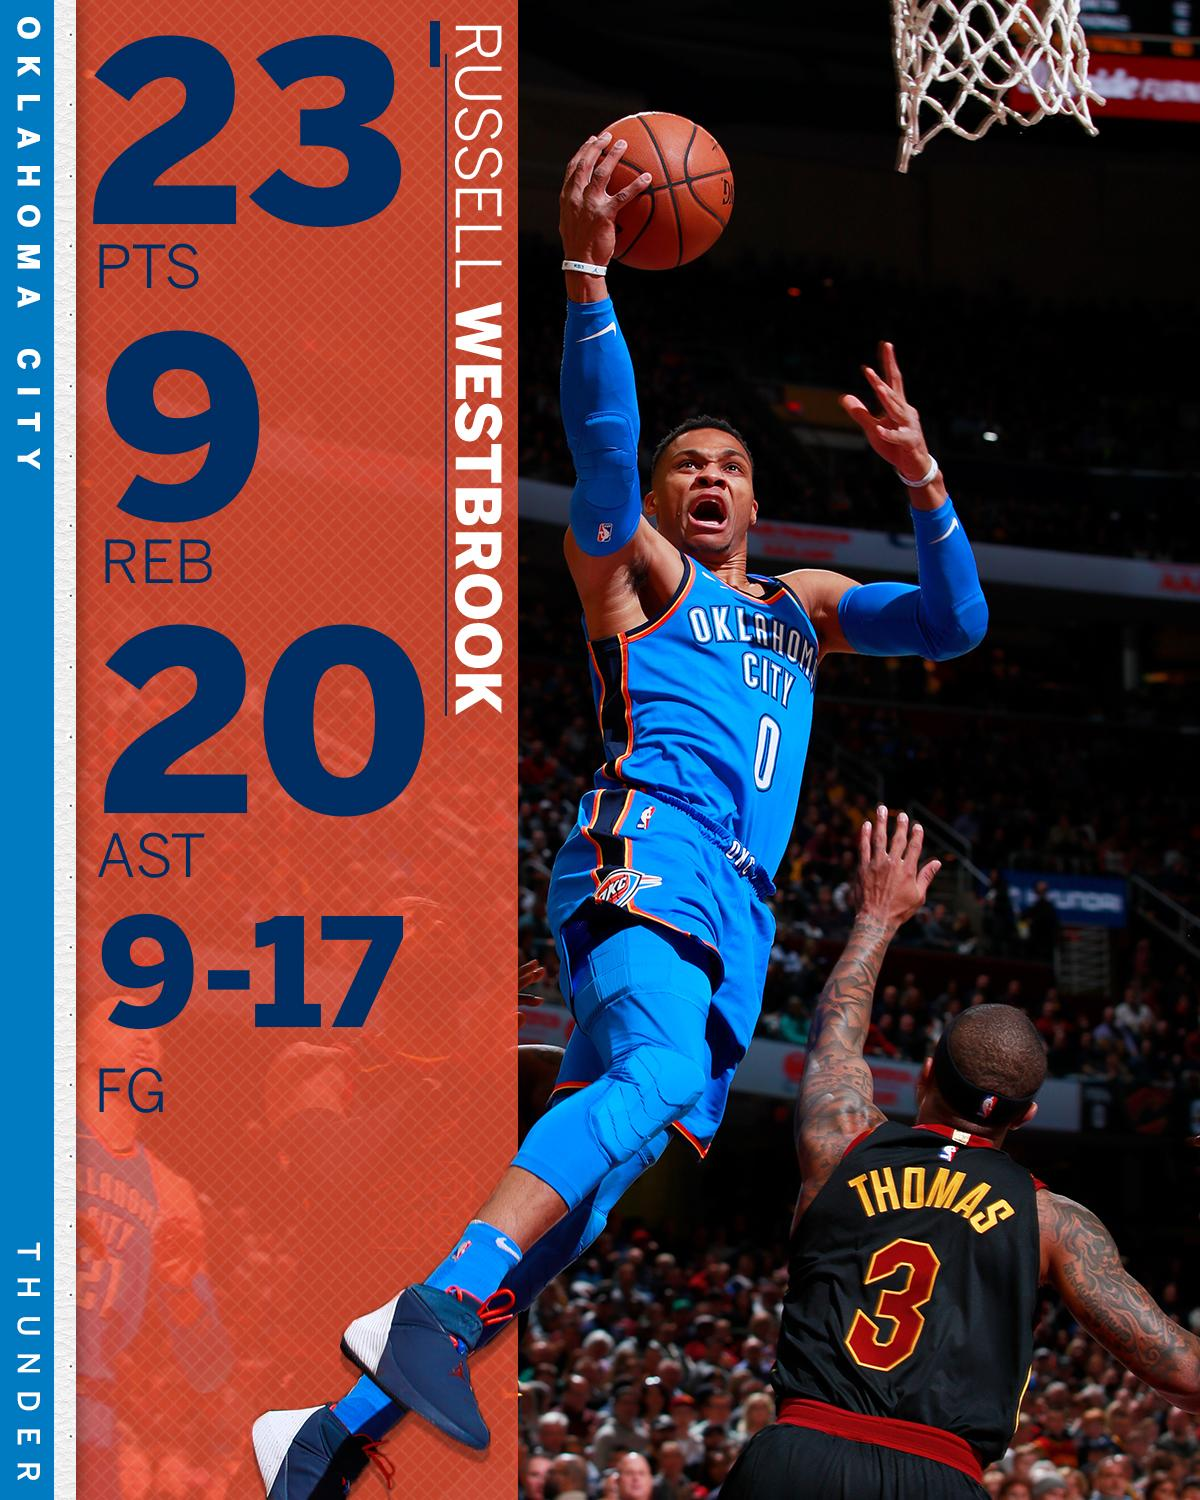 Russ just handed in his 2nd career game with 20+ pts and 20+ ast. �� https://t.co/edkCgKXPX2